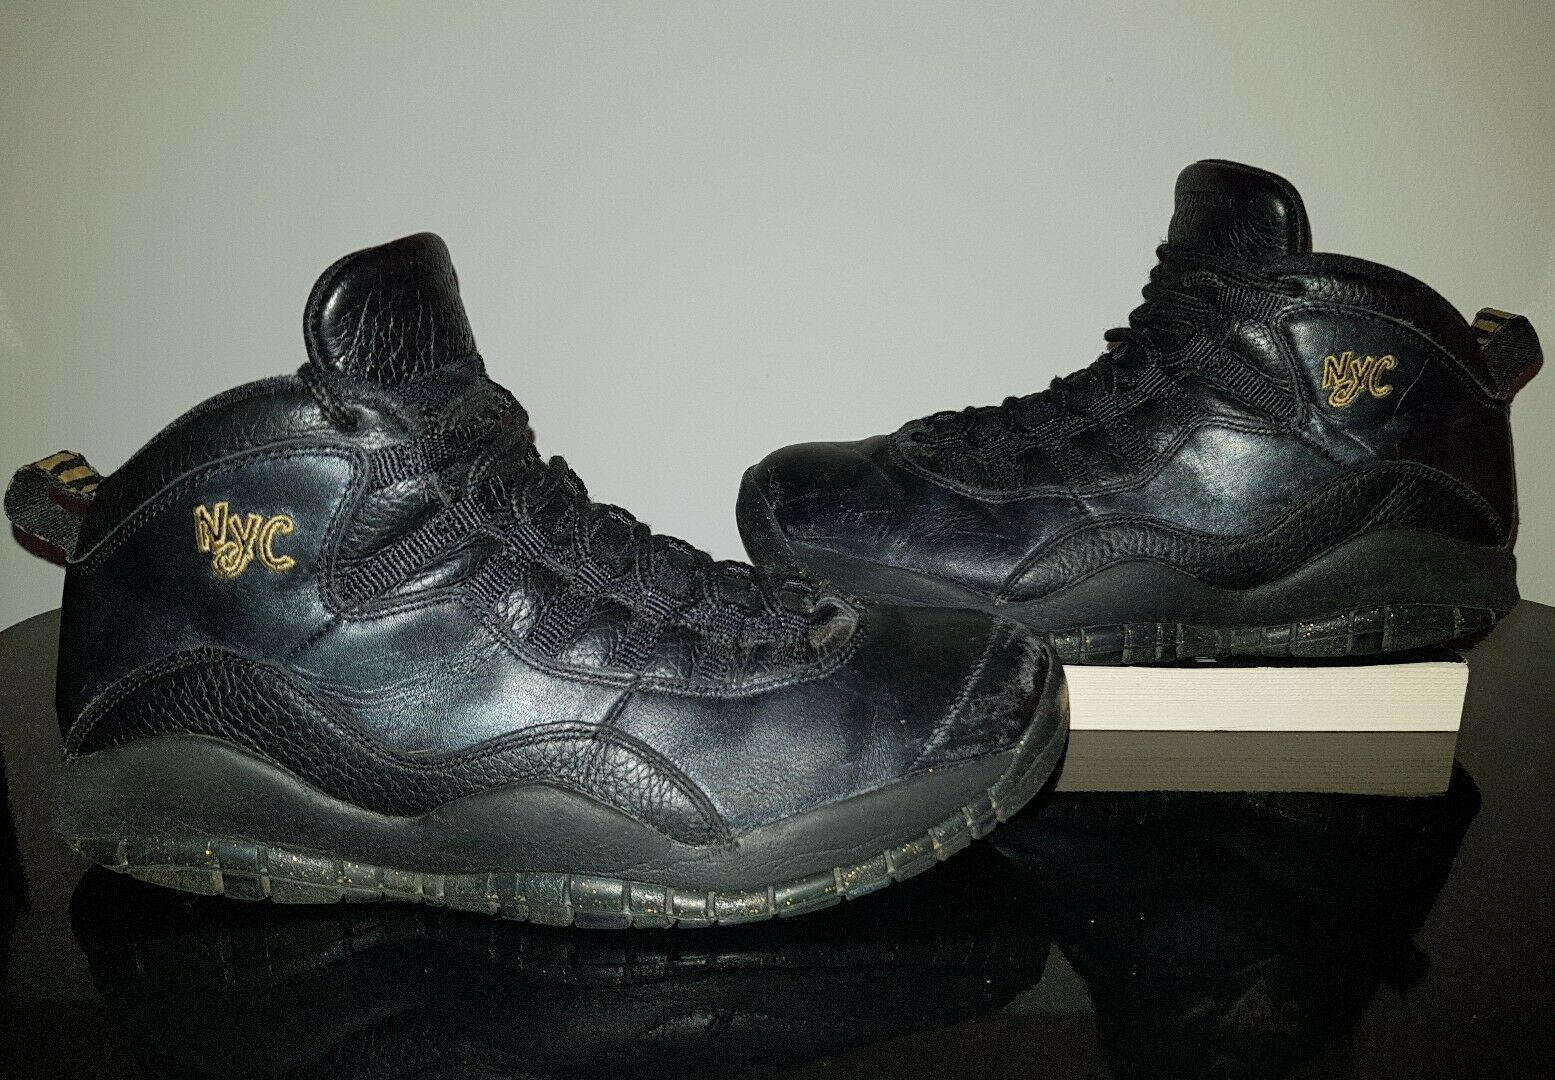 2015 NIKE AIR JORDAN 10 X RETRO 310805-012 NYC NEW YORK CITY BLACK GOLD MENS 10